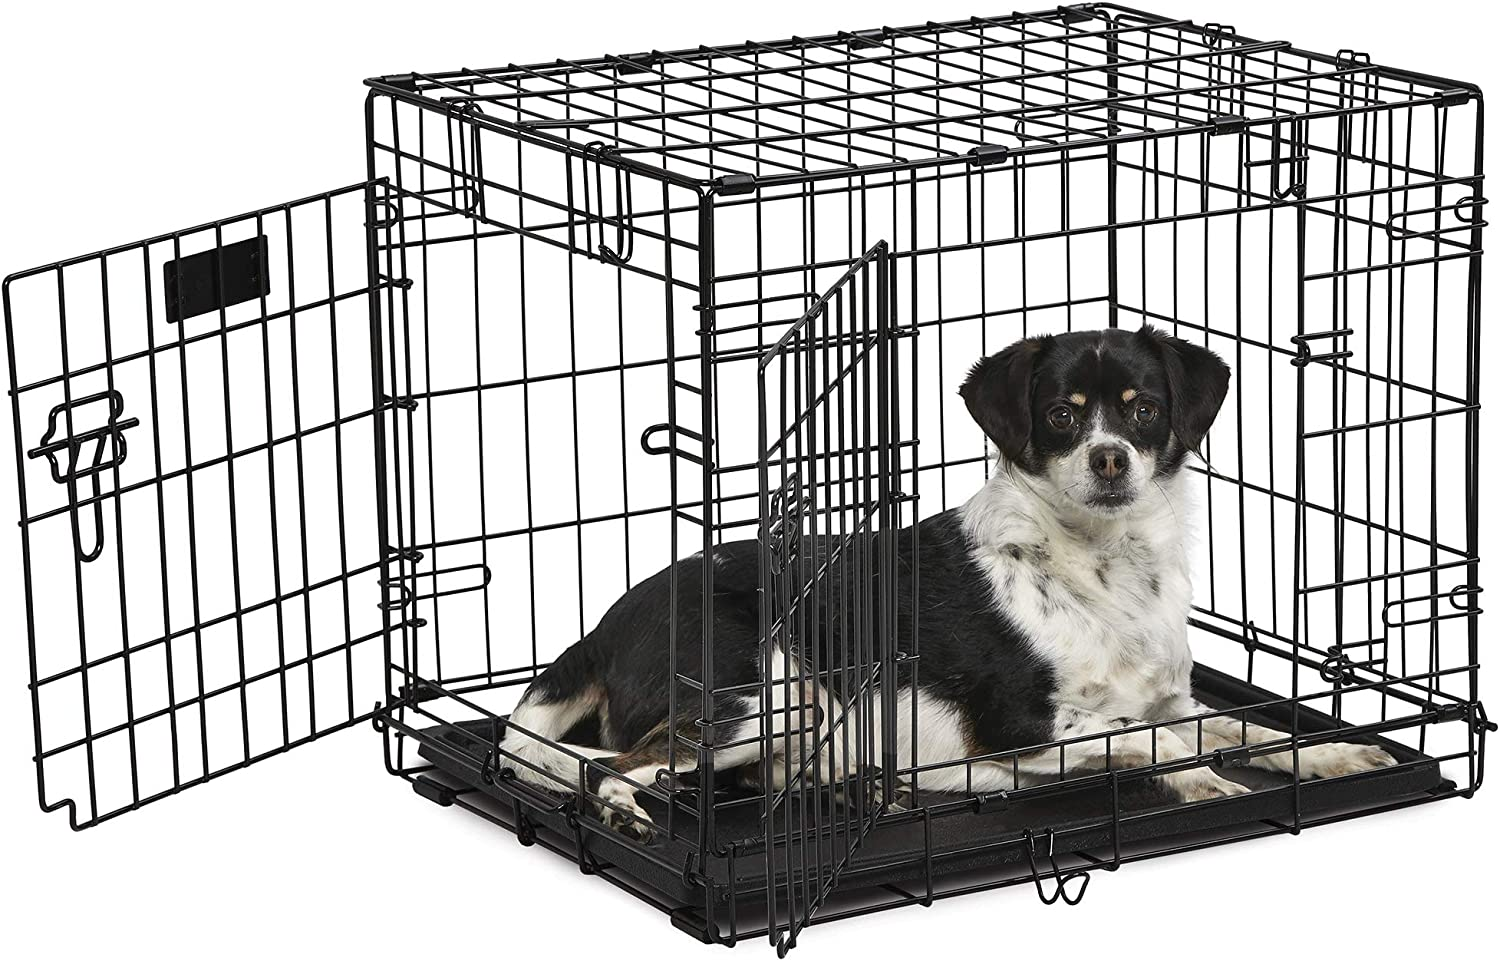 24 Contour DBL Door Dog Crate Midwest Products Co